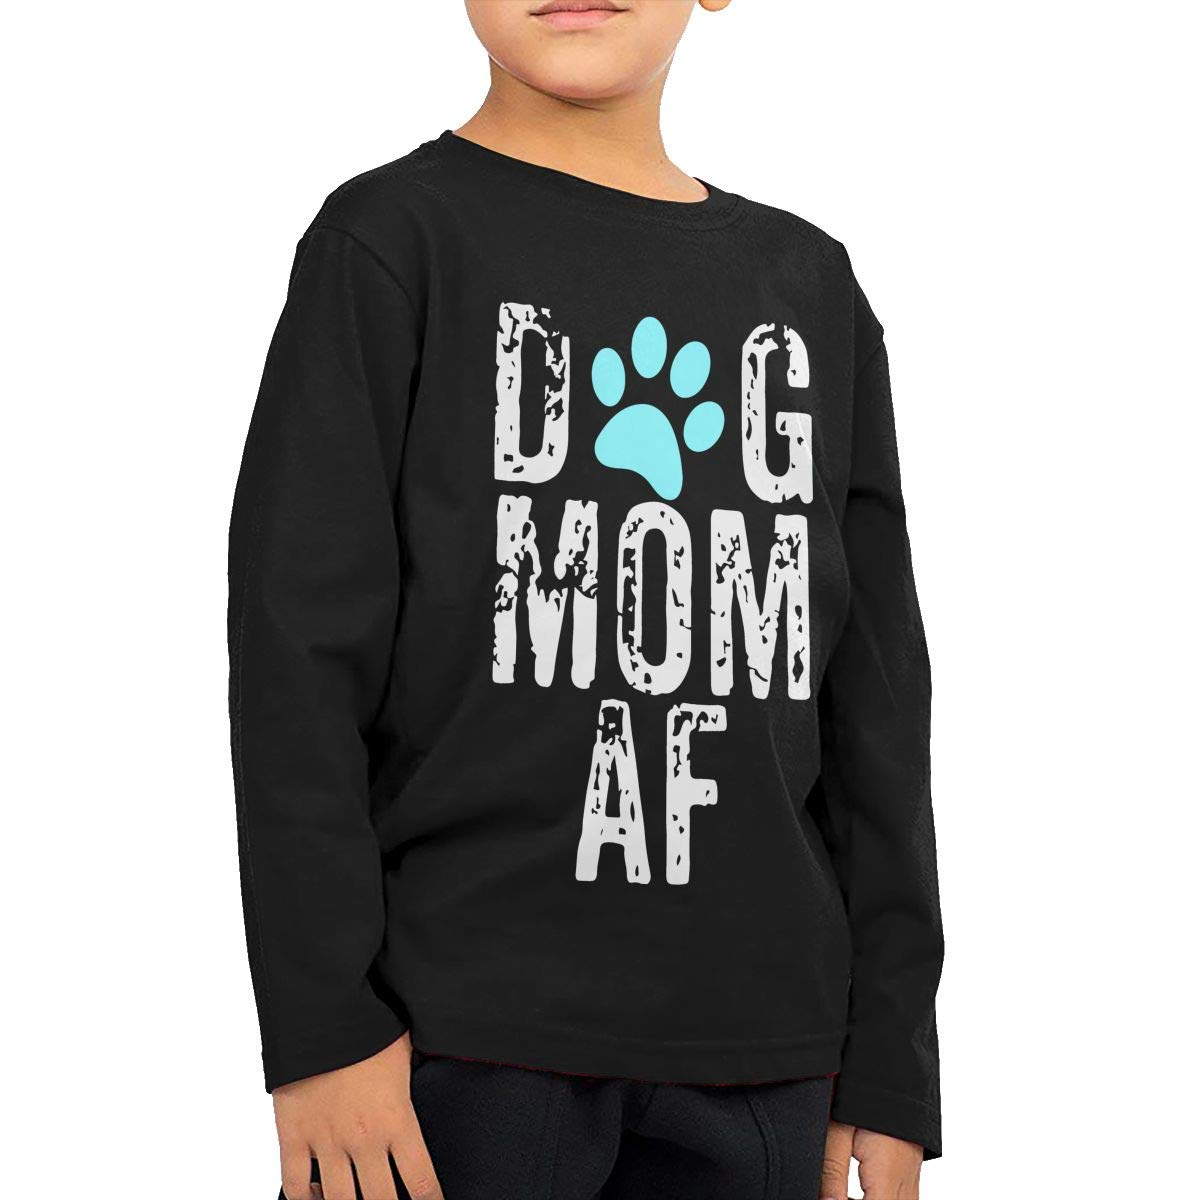 Fryhyu8 Baby Girls Childrens Dog Mom AF Printed Long Sleeve 100/% Cotton Infants Tee Shirt